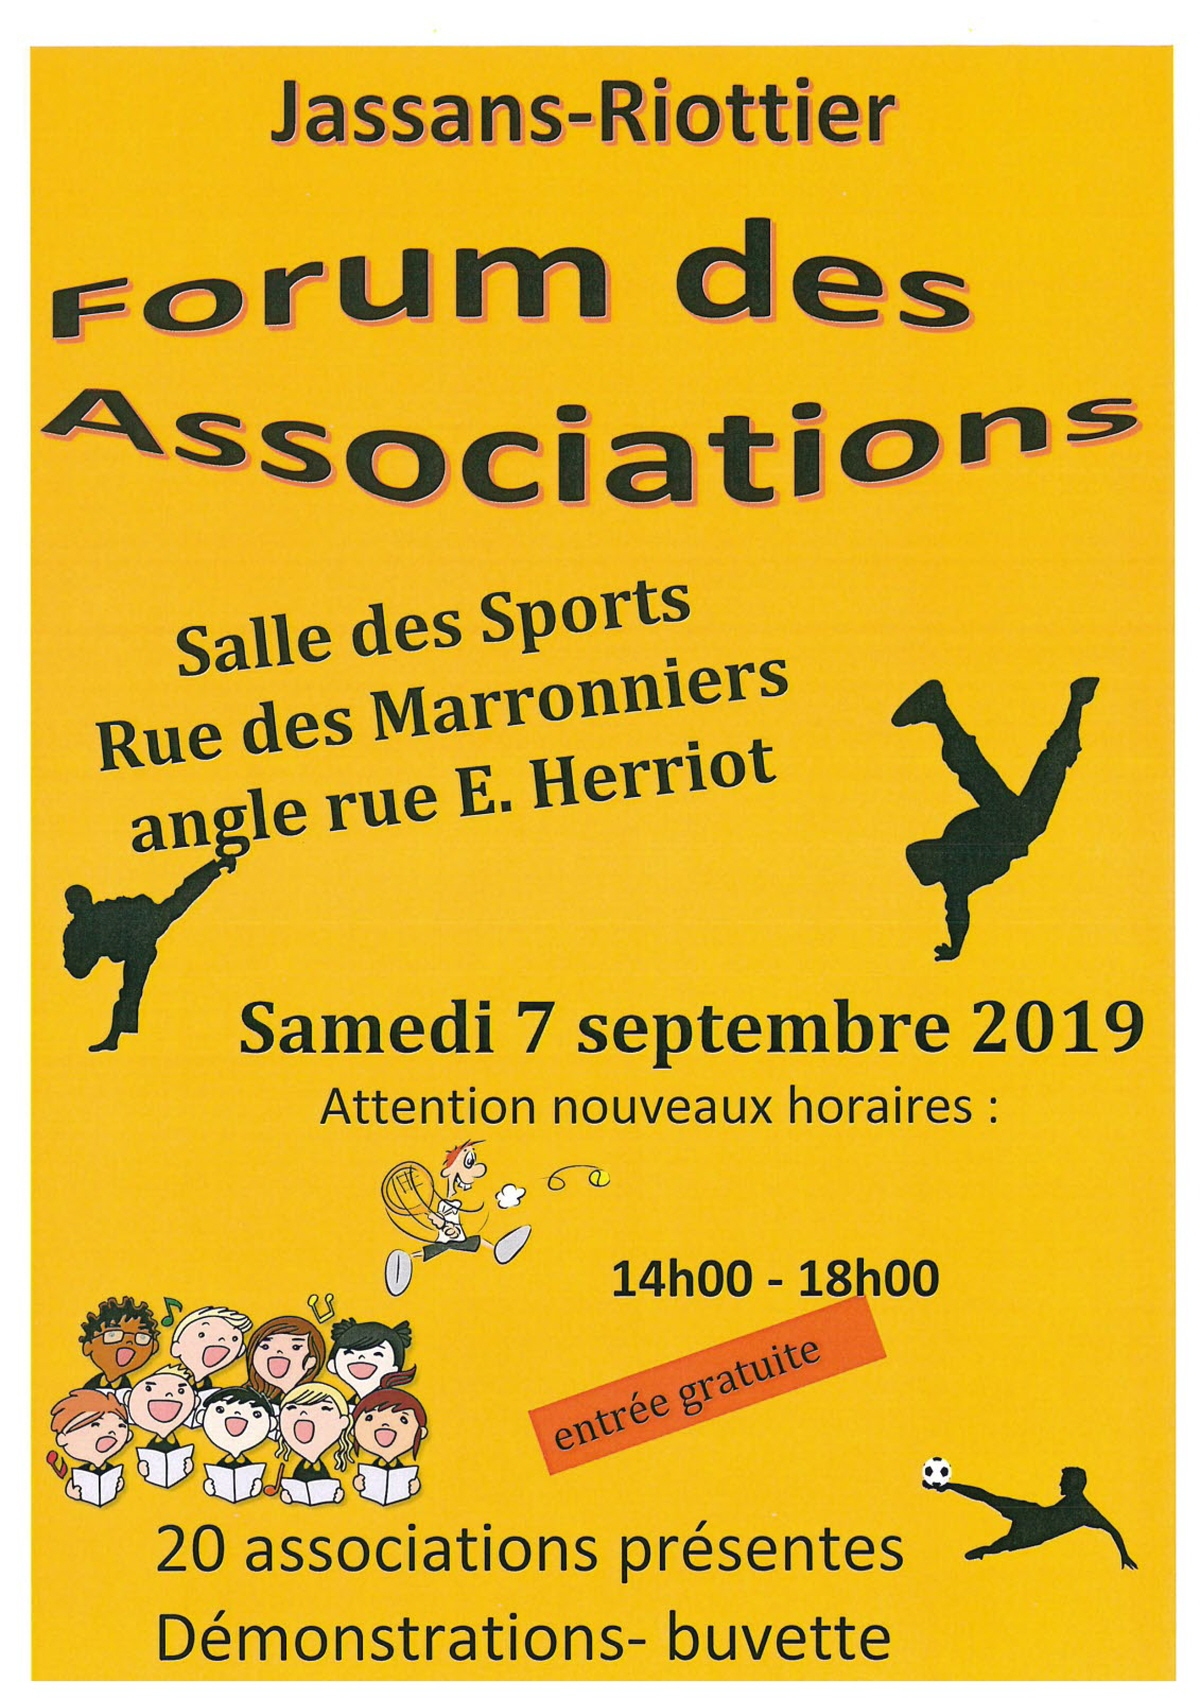 forum rencontre gratuite